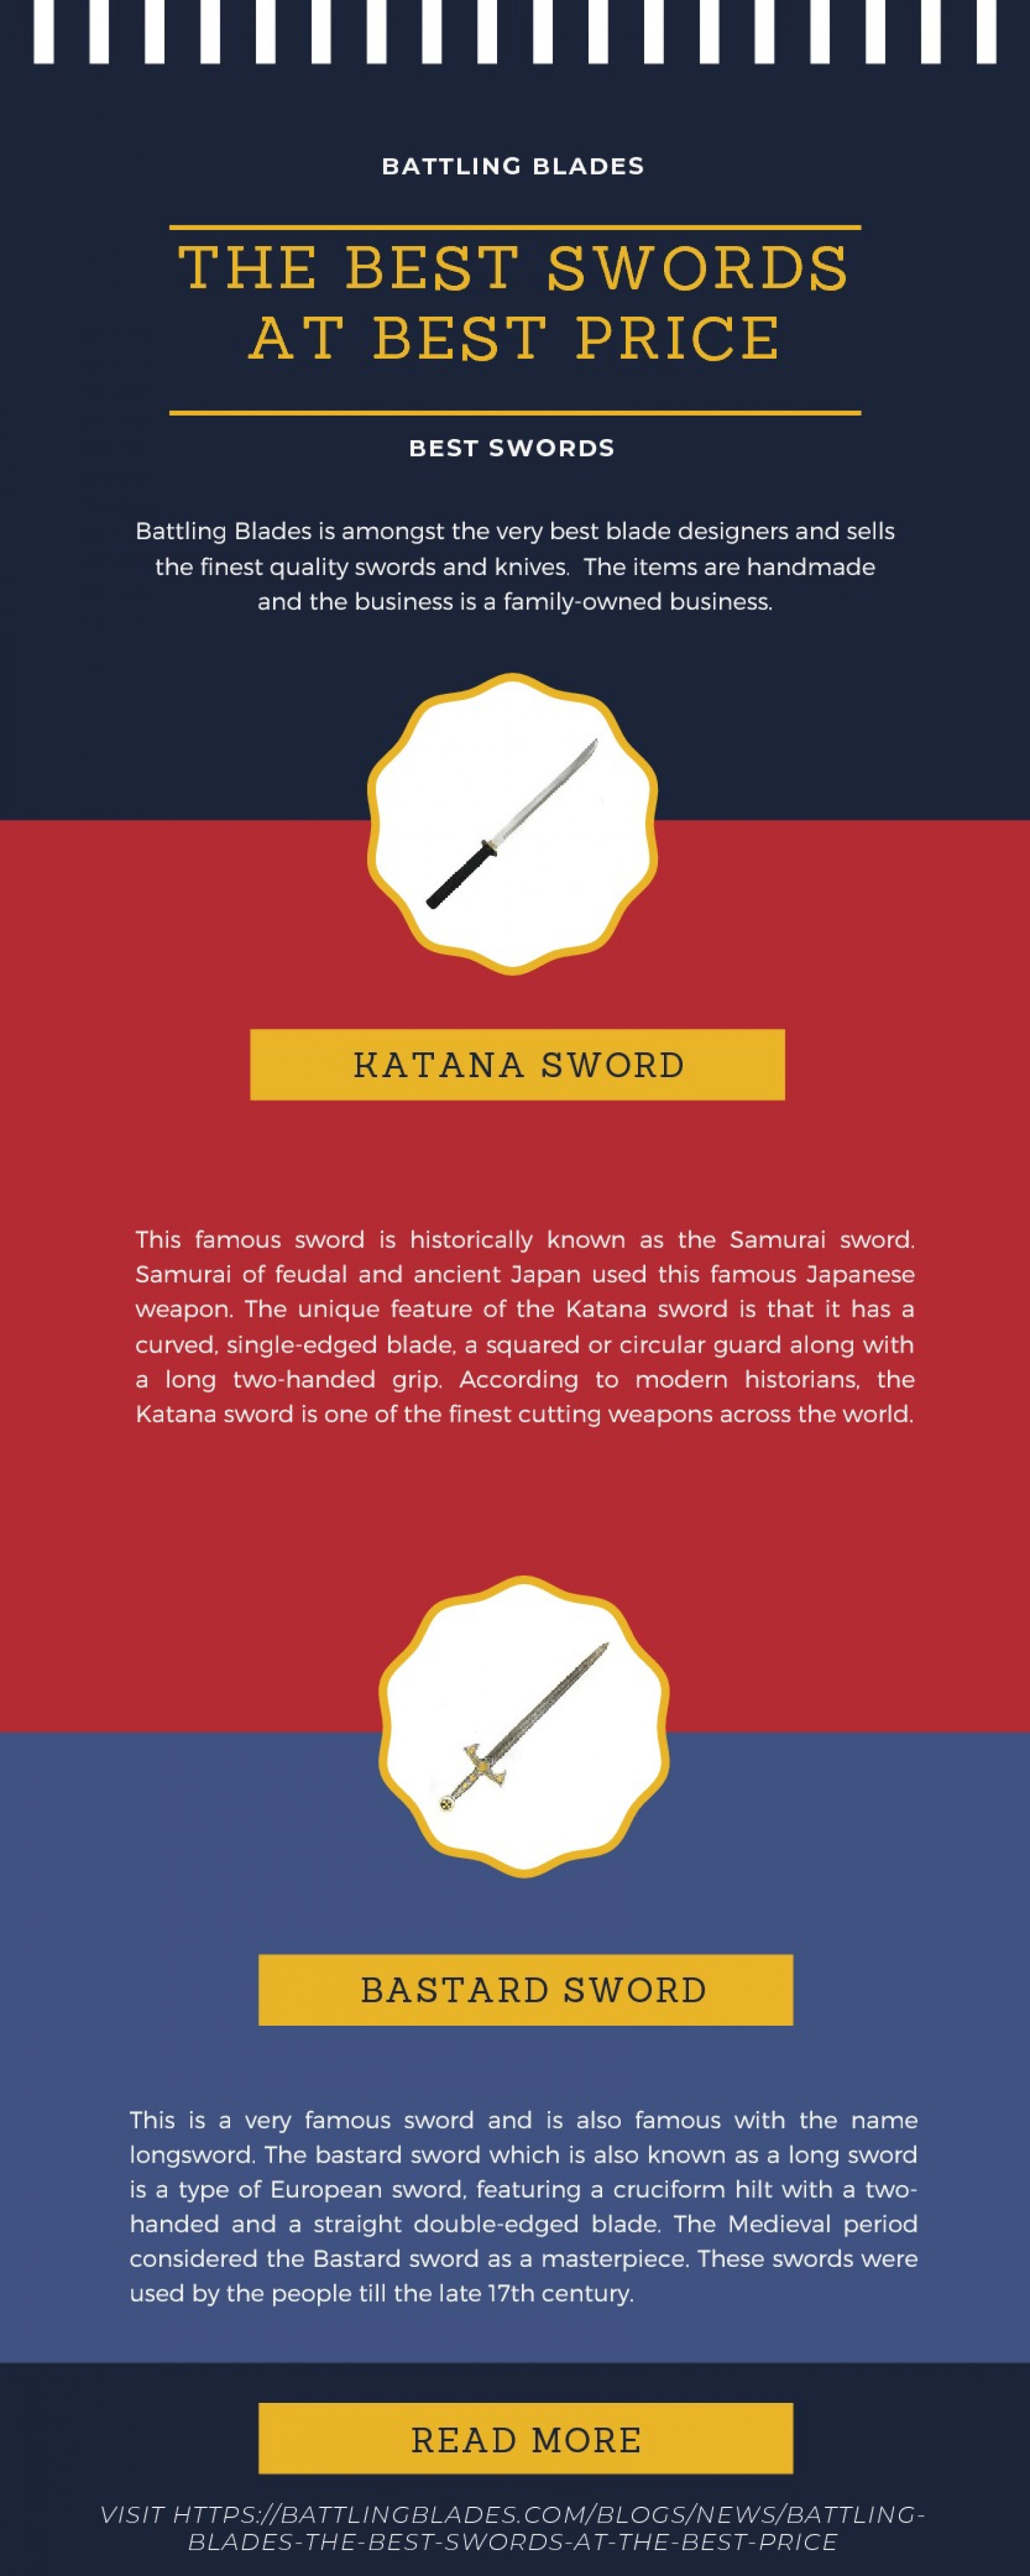 The Best Swords at the Best Price